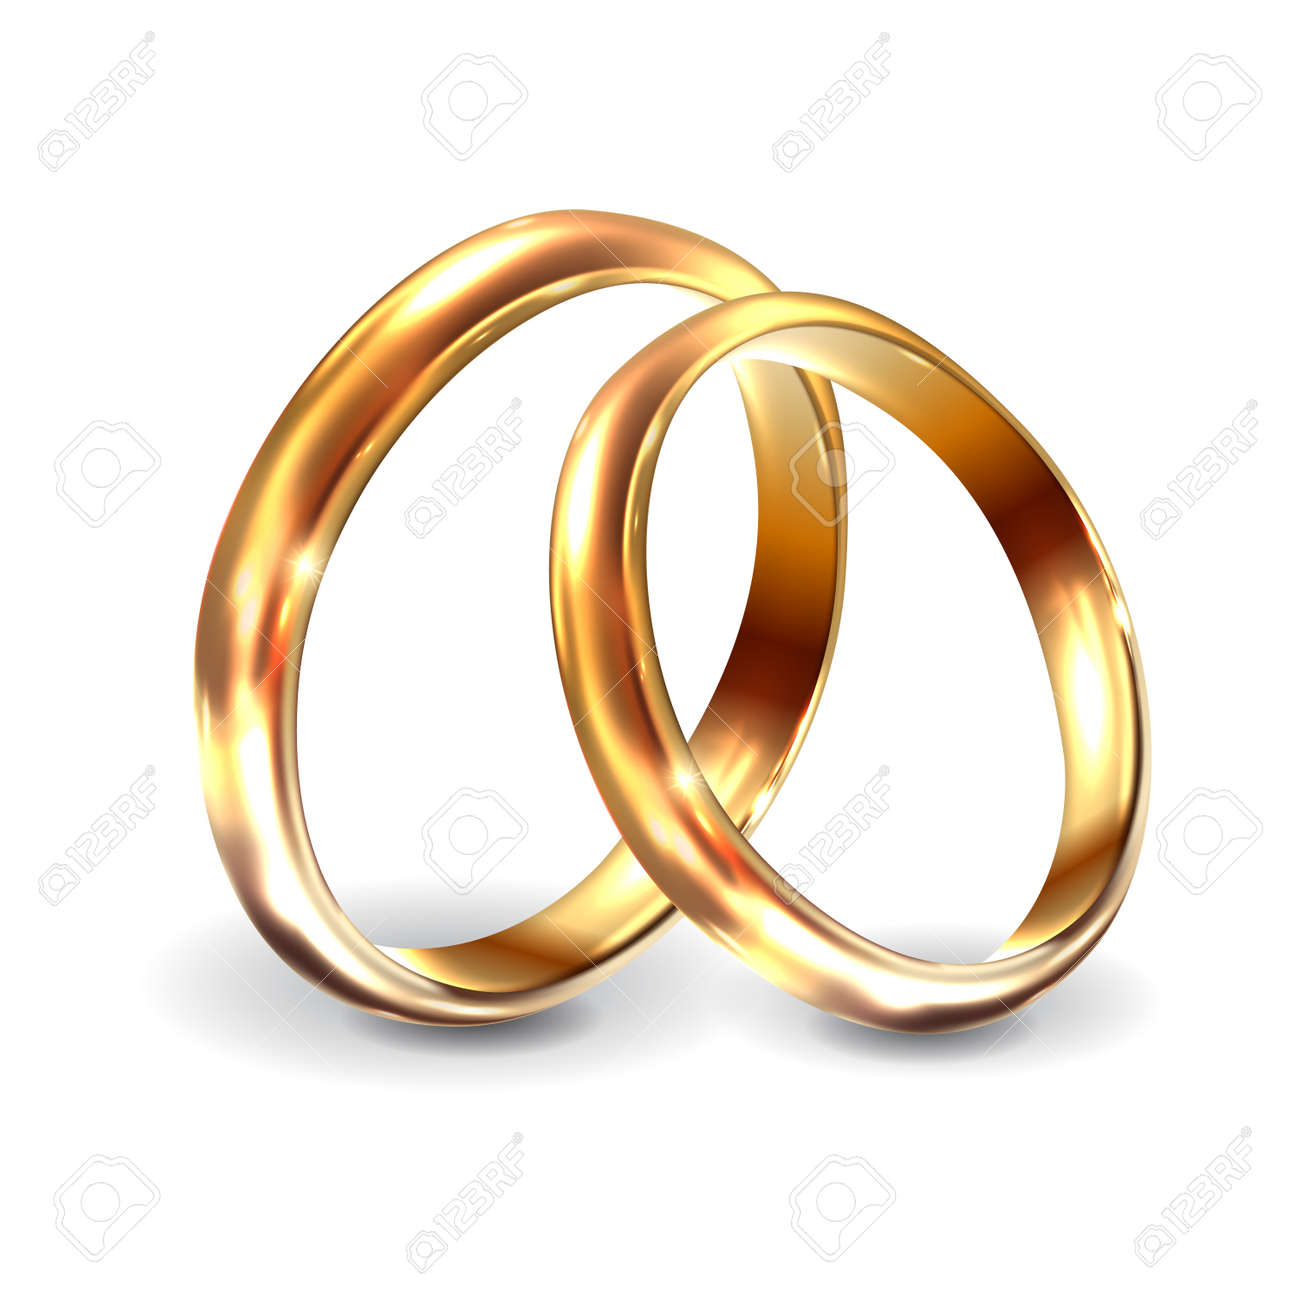 Gold wedding rings 3d realistic engagement illustration. Wedding rings for engagement on white background. Vector illustration - 158509230